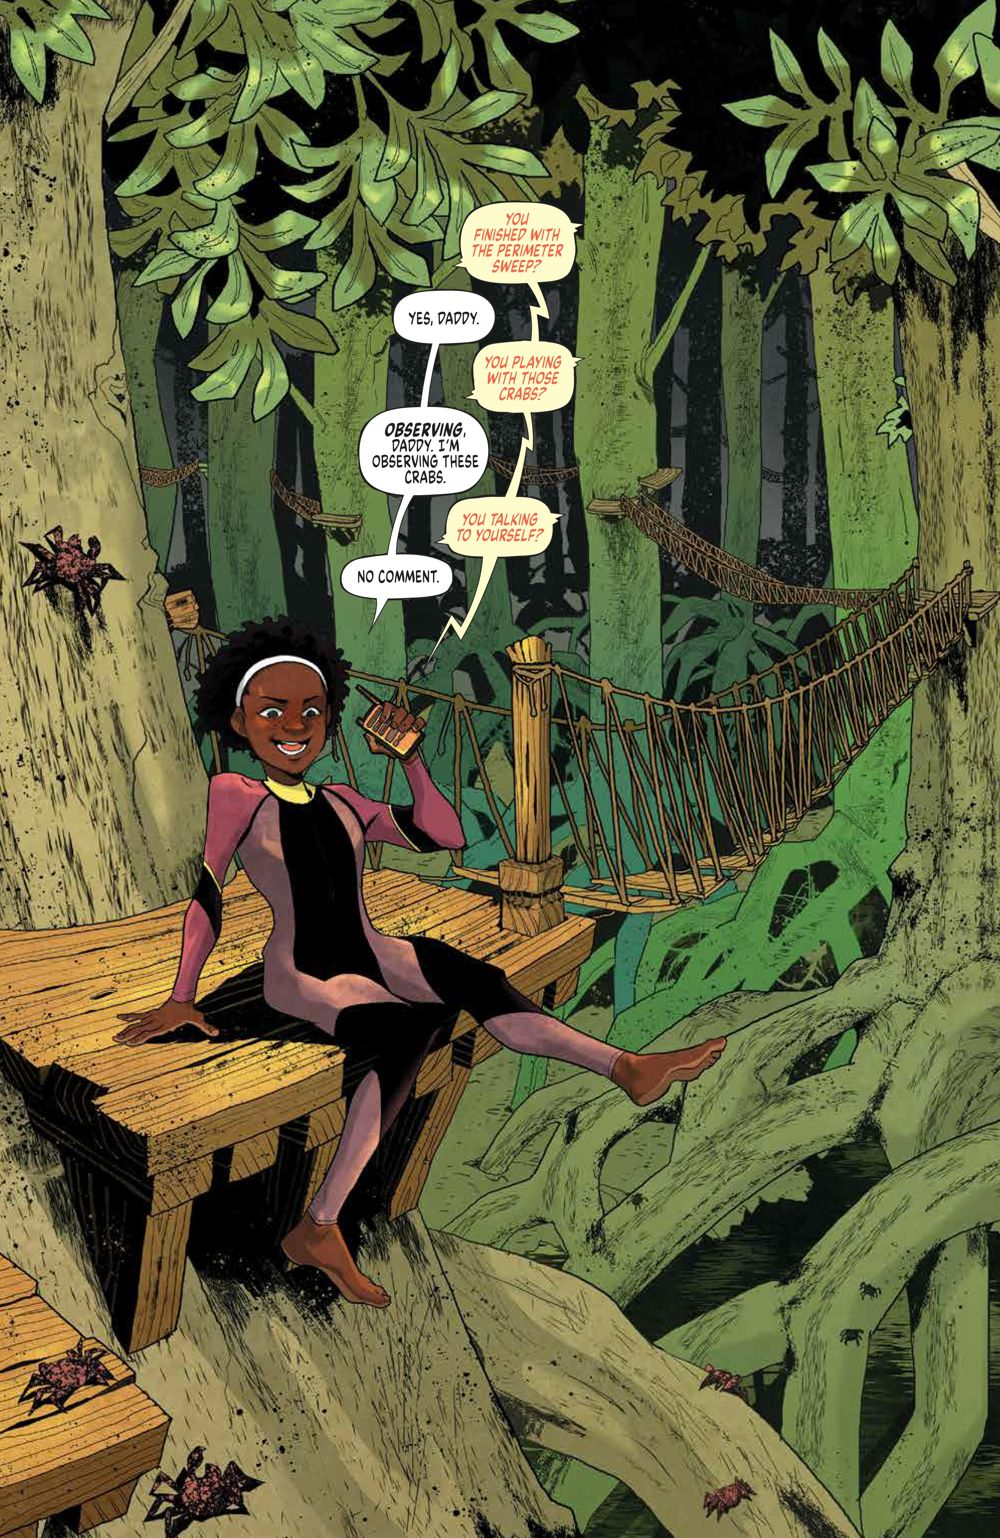 Eve_001_PRESS_4 ComicList Previews: EVE #1 (OF 5)